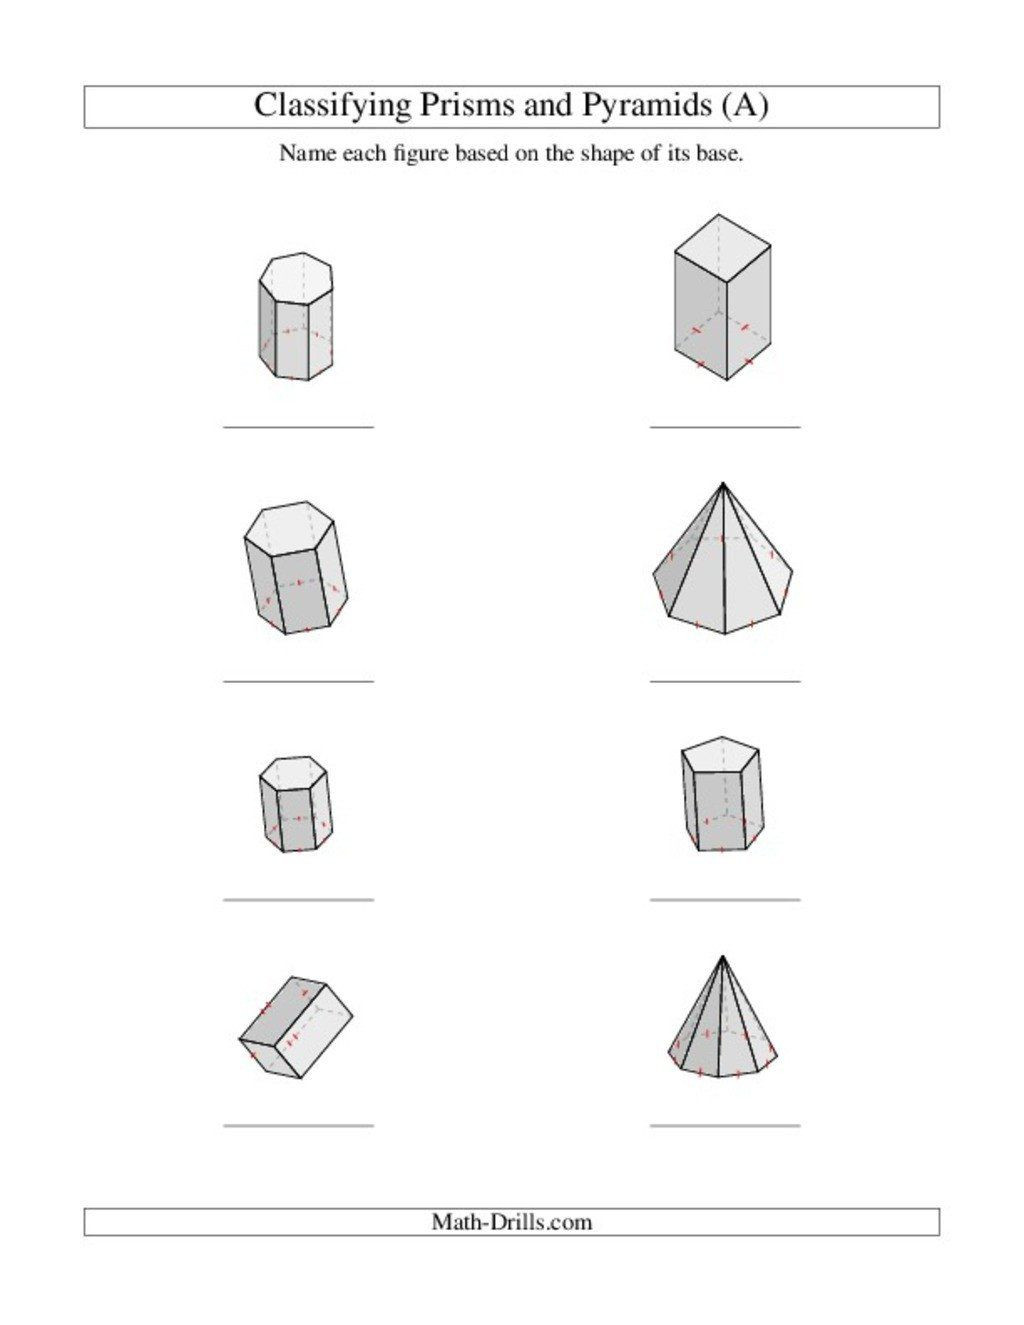 3d Shape Worksheets First Grade 3d Shapes Lesson Plans Worksheets Reviewed By Teachers In 2020 Shapes Worksheets Volume Worksheets Shapes Worksheet Kindergarten